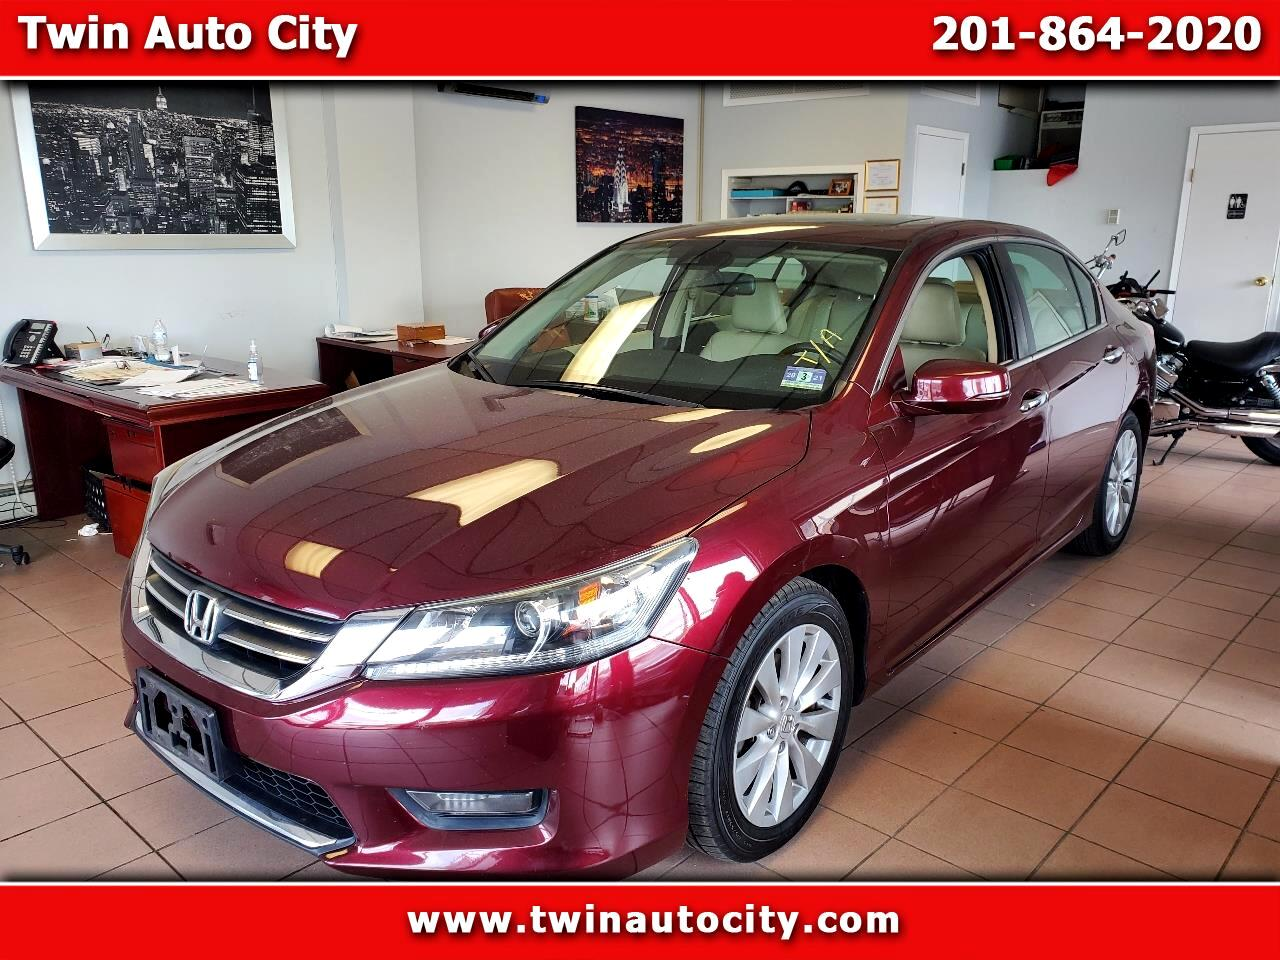 Honda Accord Sedan 4dr I4 CVT EX-L 2014